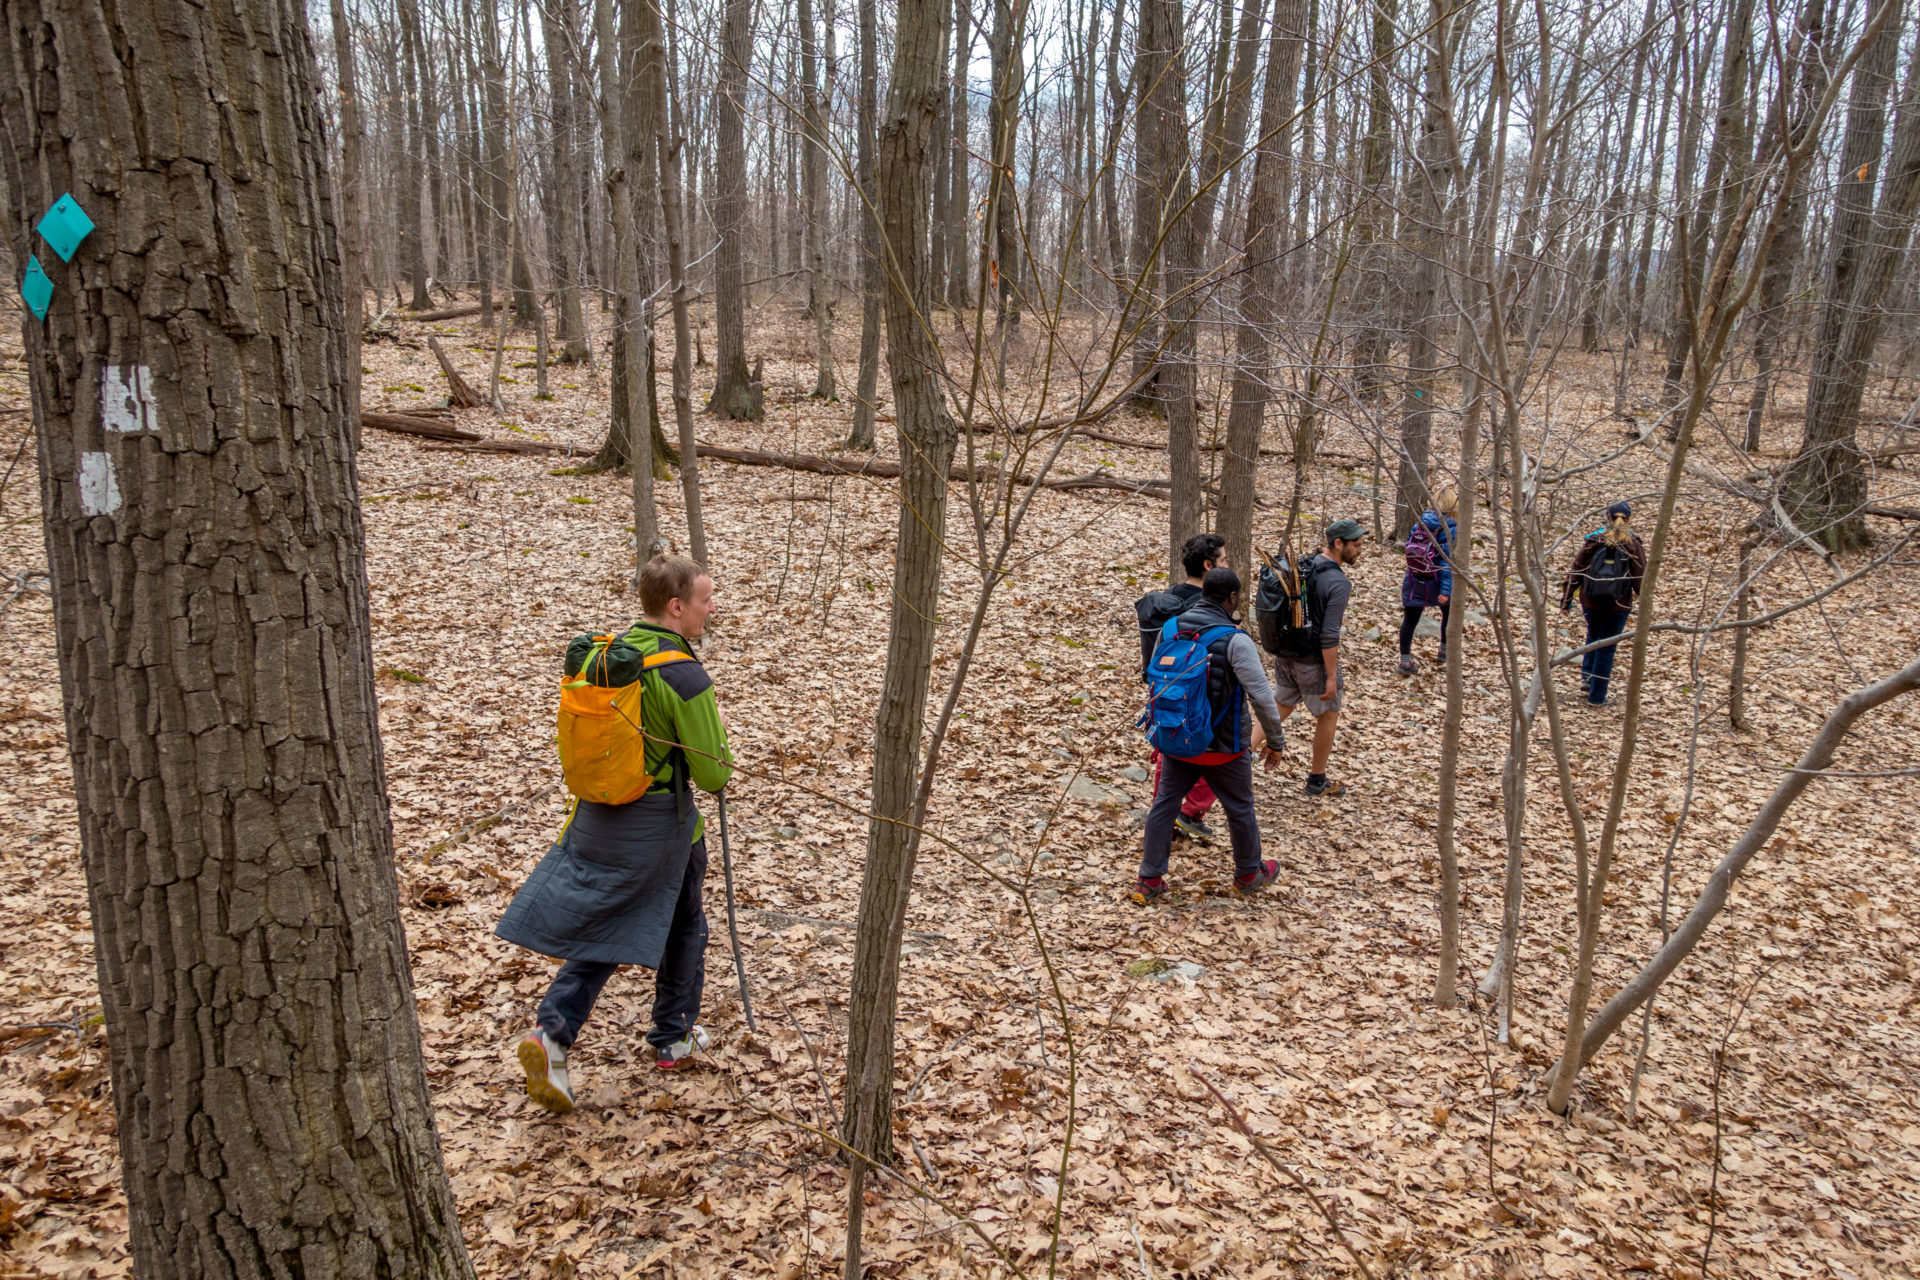 The group hikes through the leaf-littered forest floor